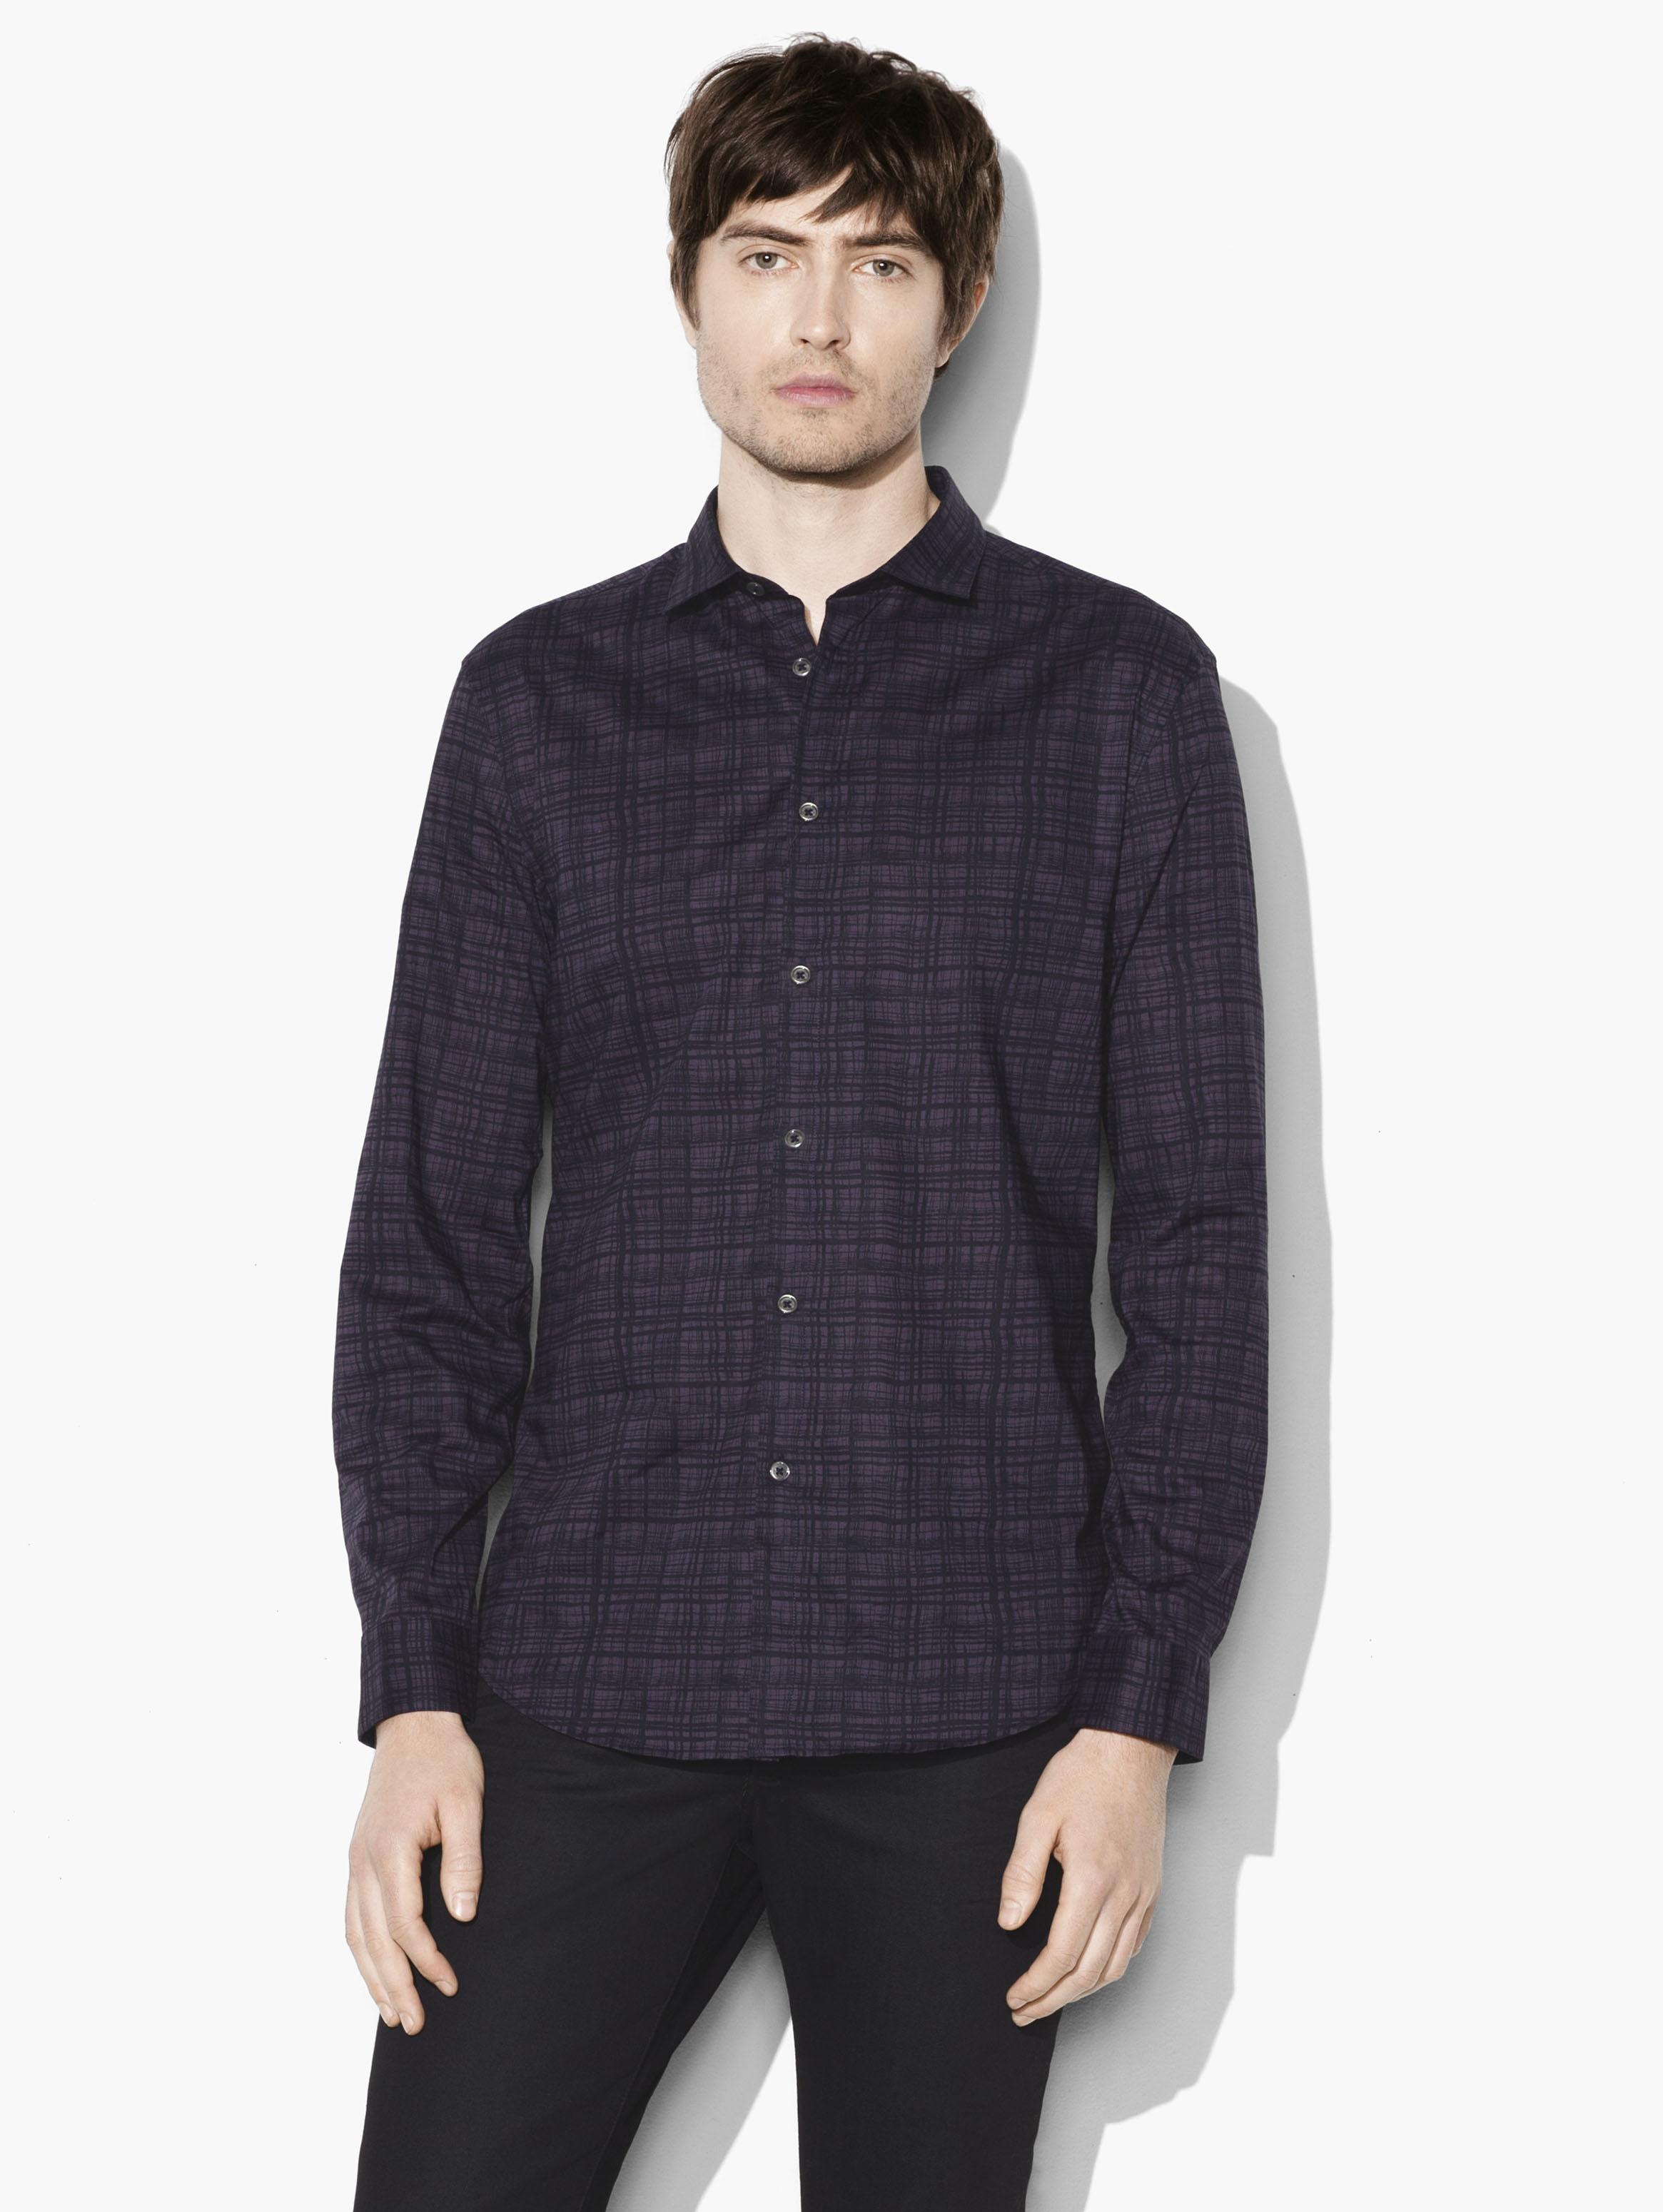 SLIM FIT SPORT SHIRT WITH SHANK BUTTONS, AND BACK